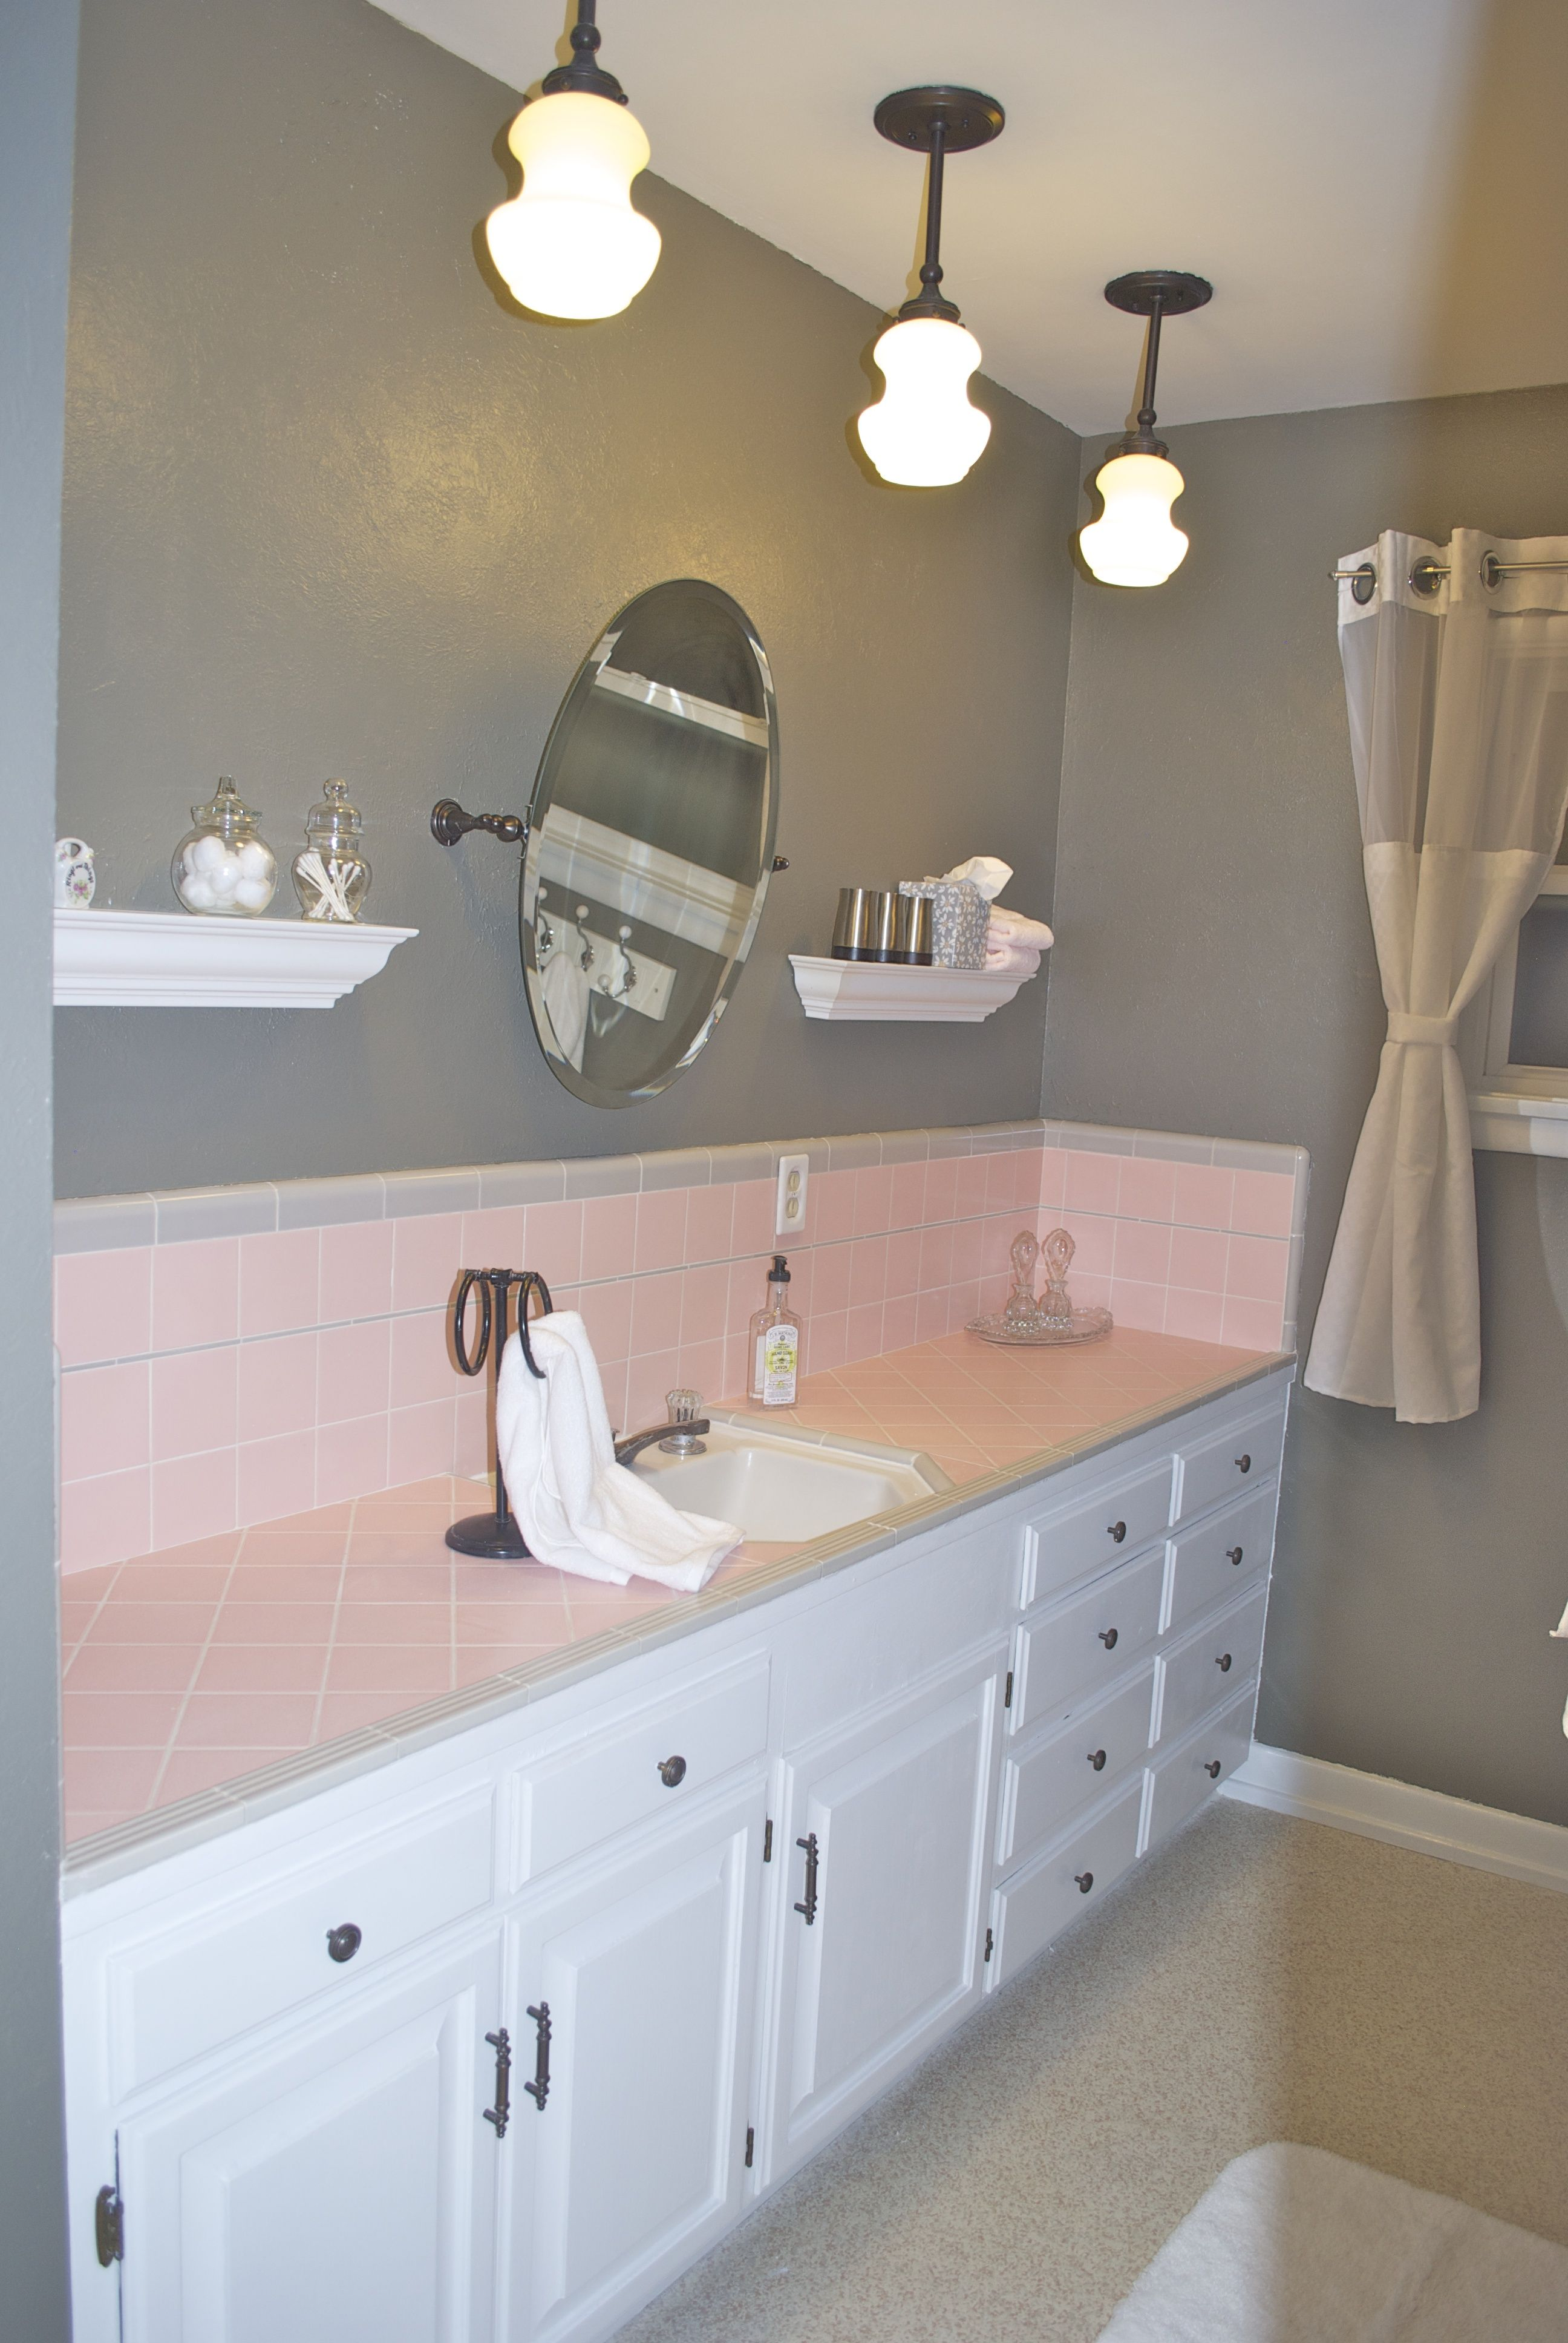 Pink Tile Bathroom Something Other Than Just Ripping It Out